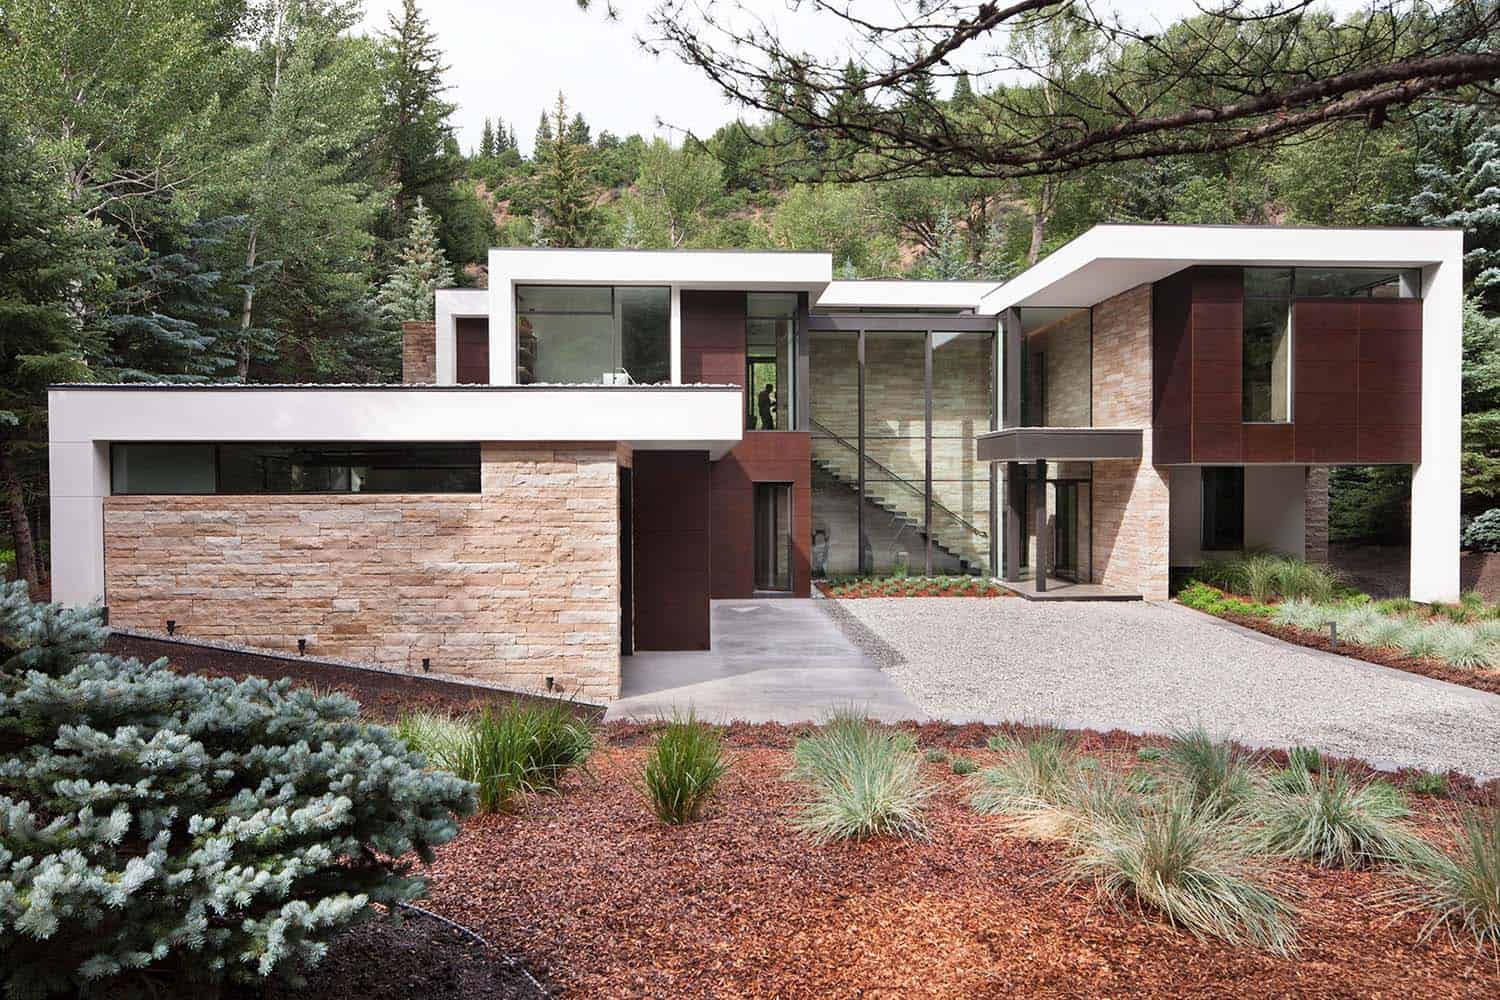 Contemporary Mountain Home-Charles Cunniffe Architects-27-1 Kindesign